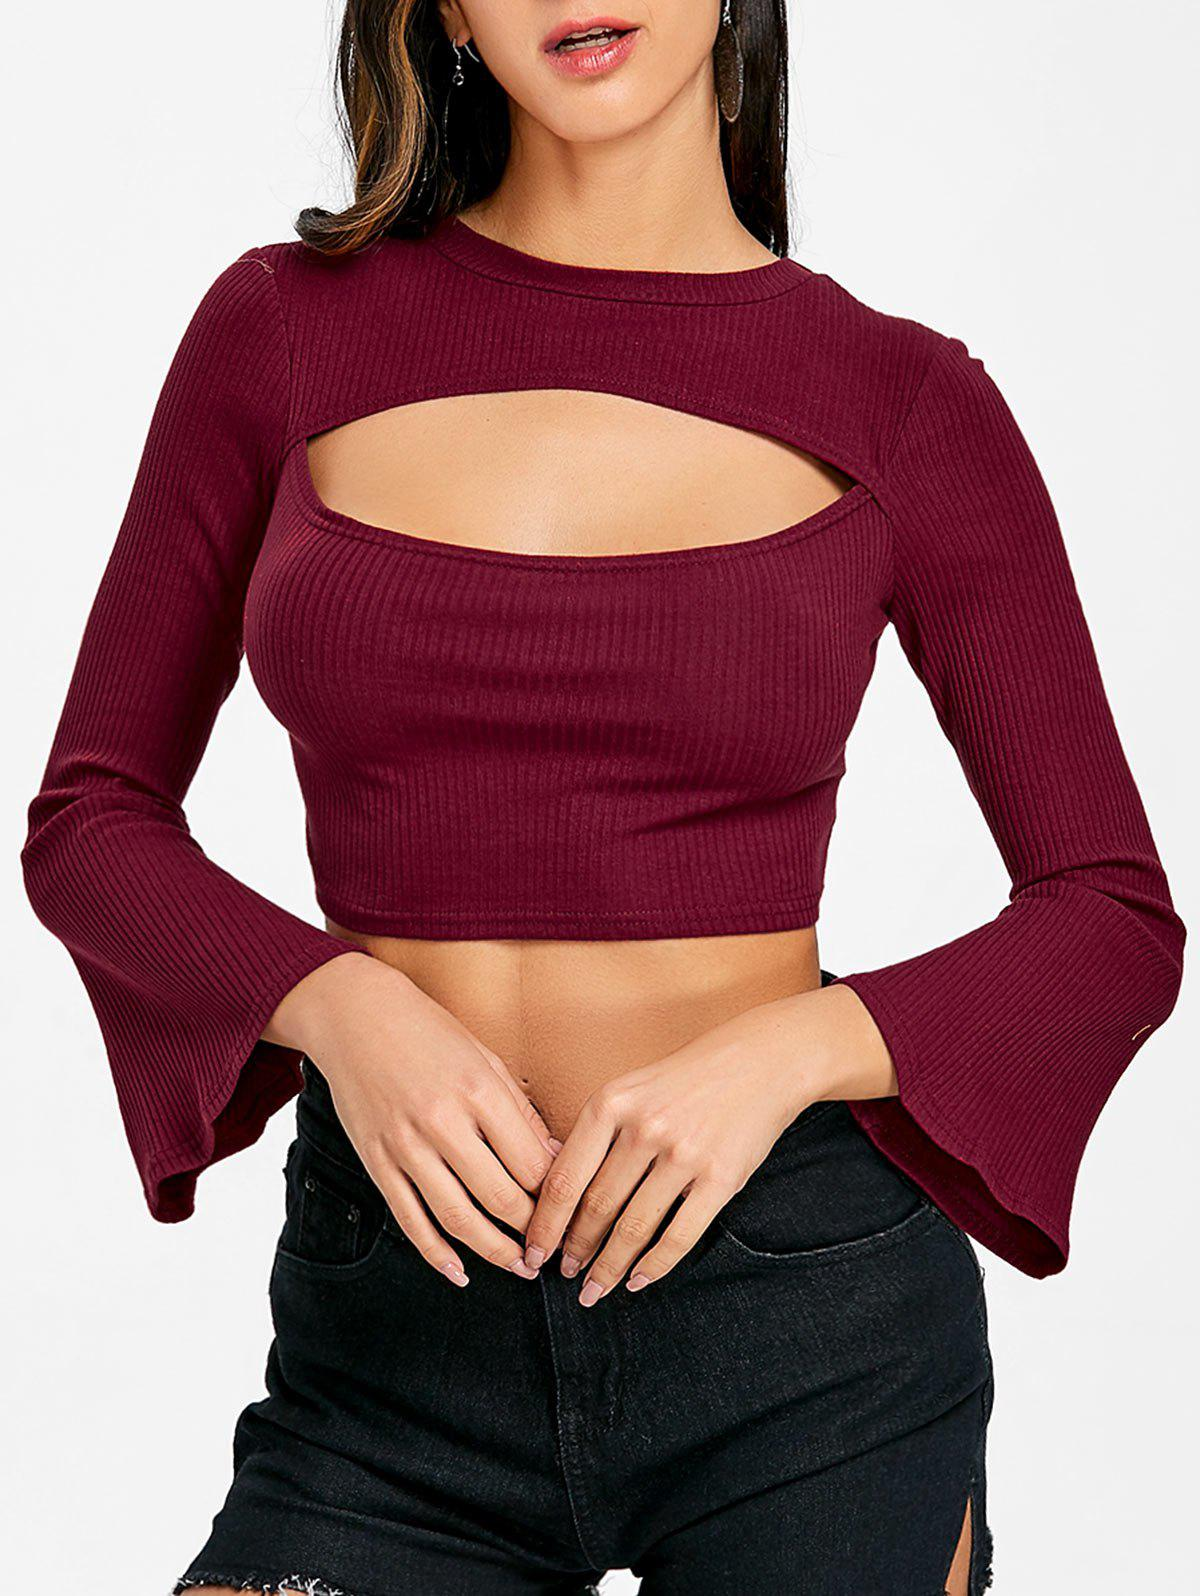 Flare Sleeve Cropped Cut Out Rib Top - WINE RED S